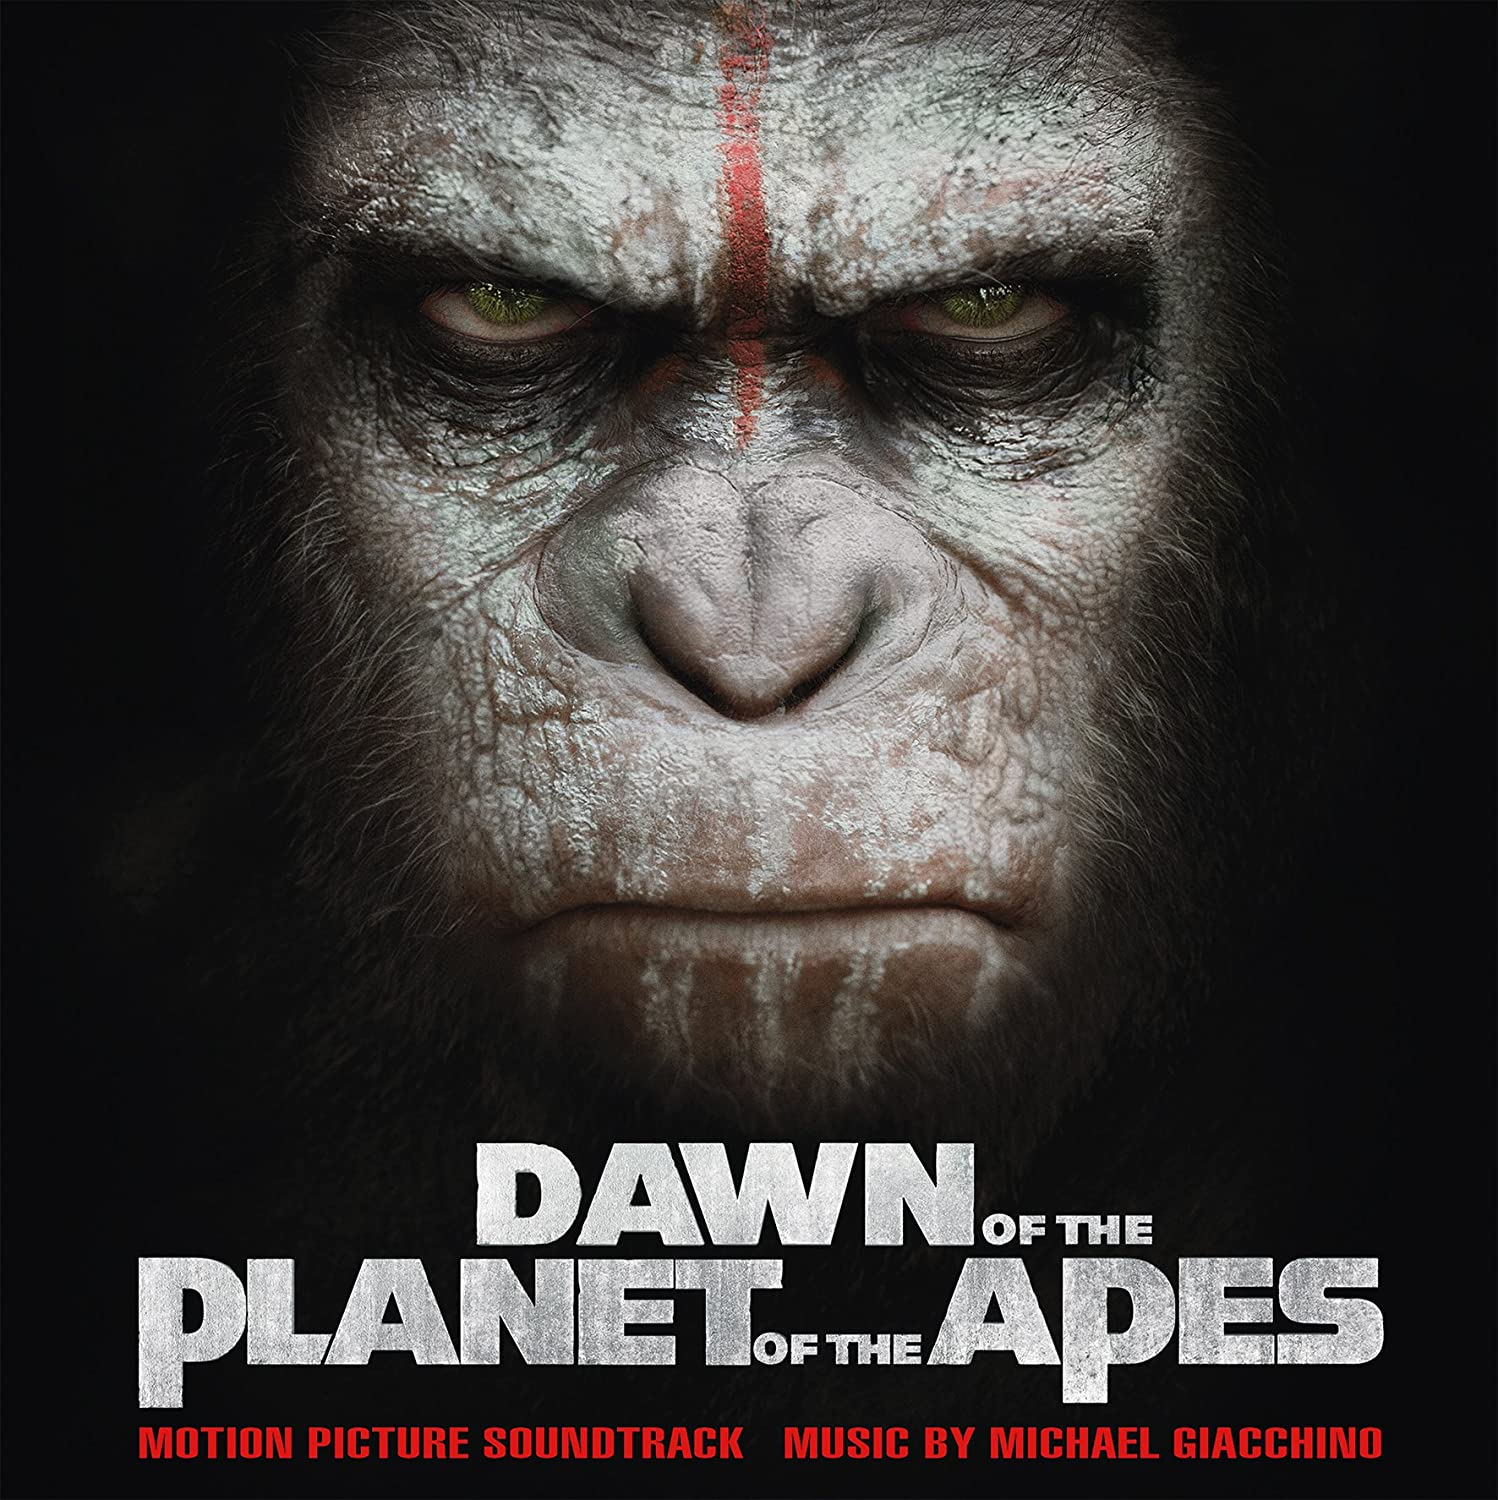 Rise of the planet of the apes wikipedia.